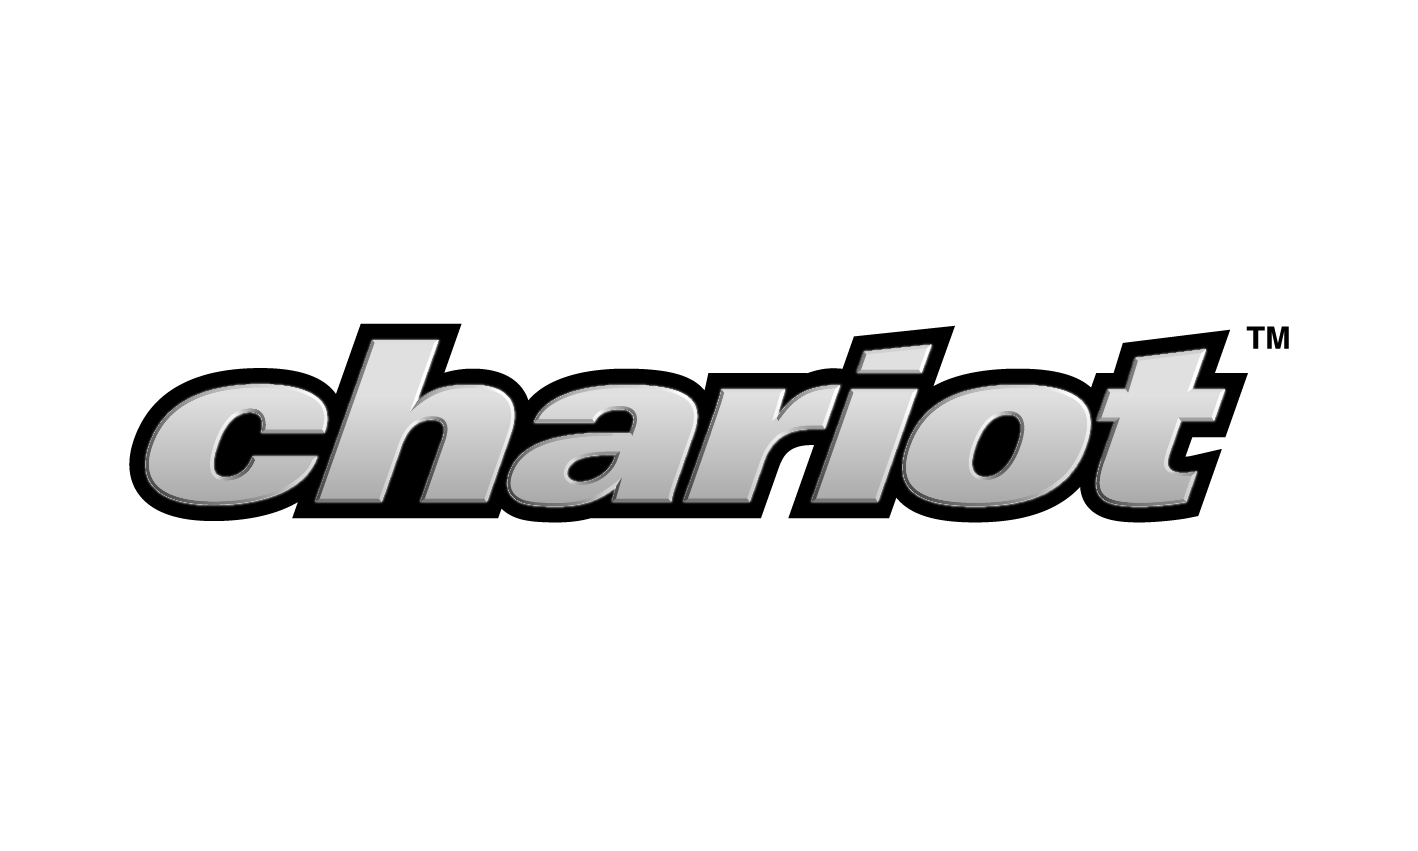 Chariot.png